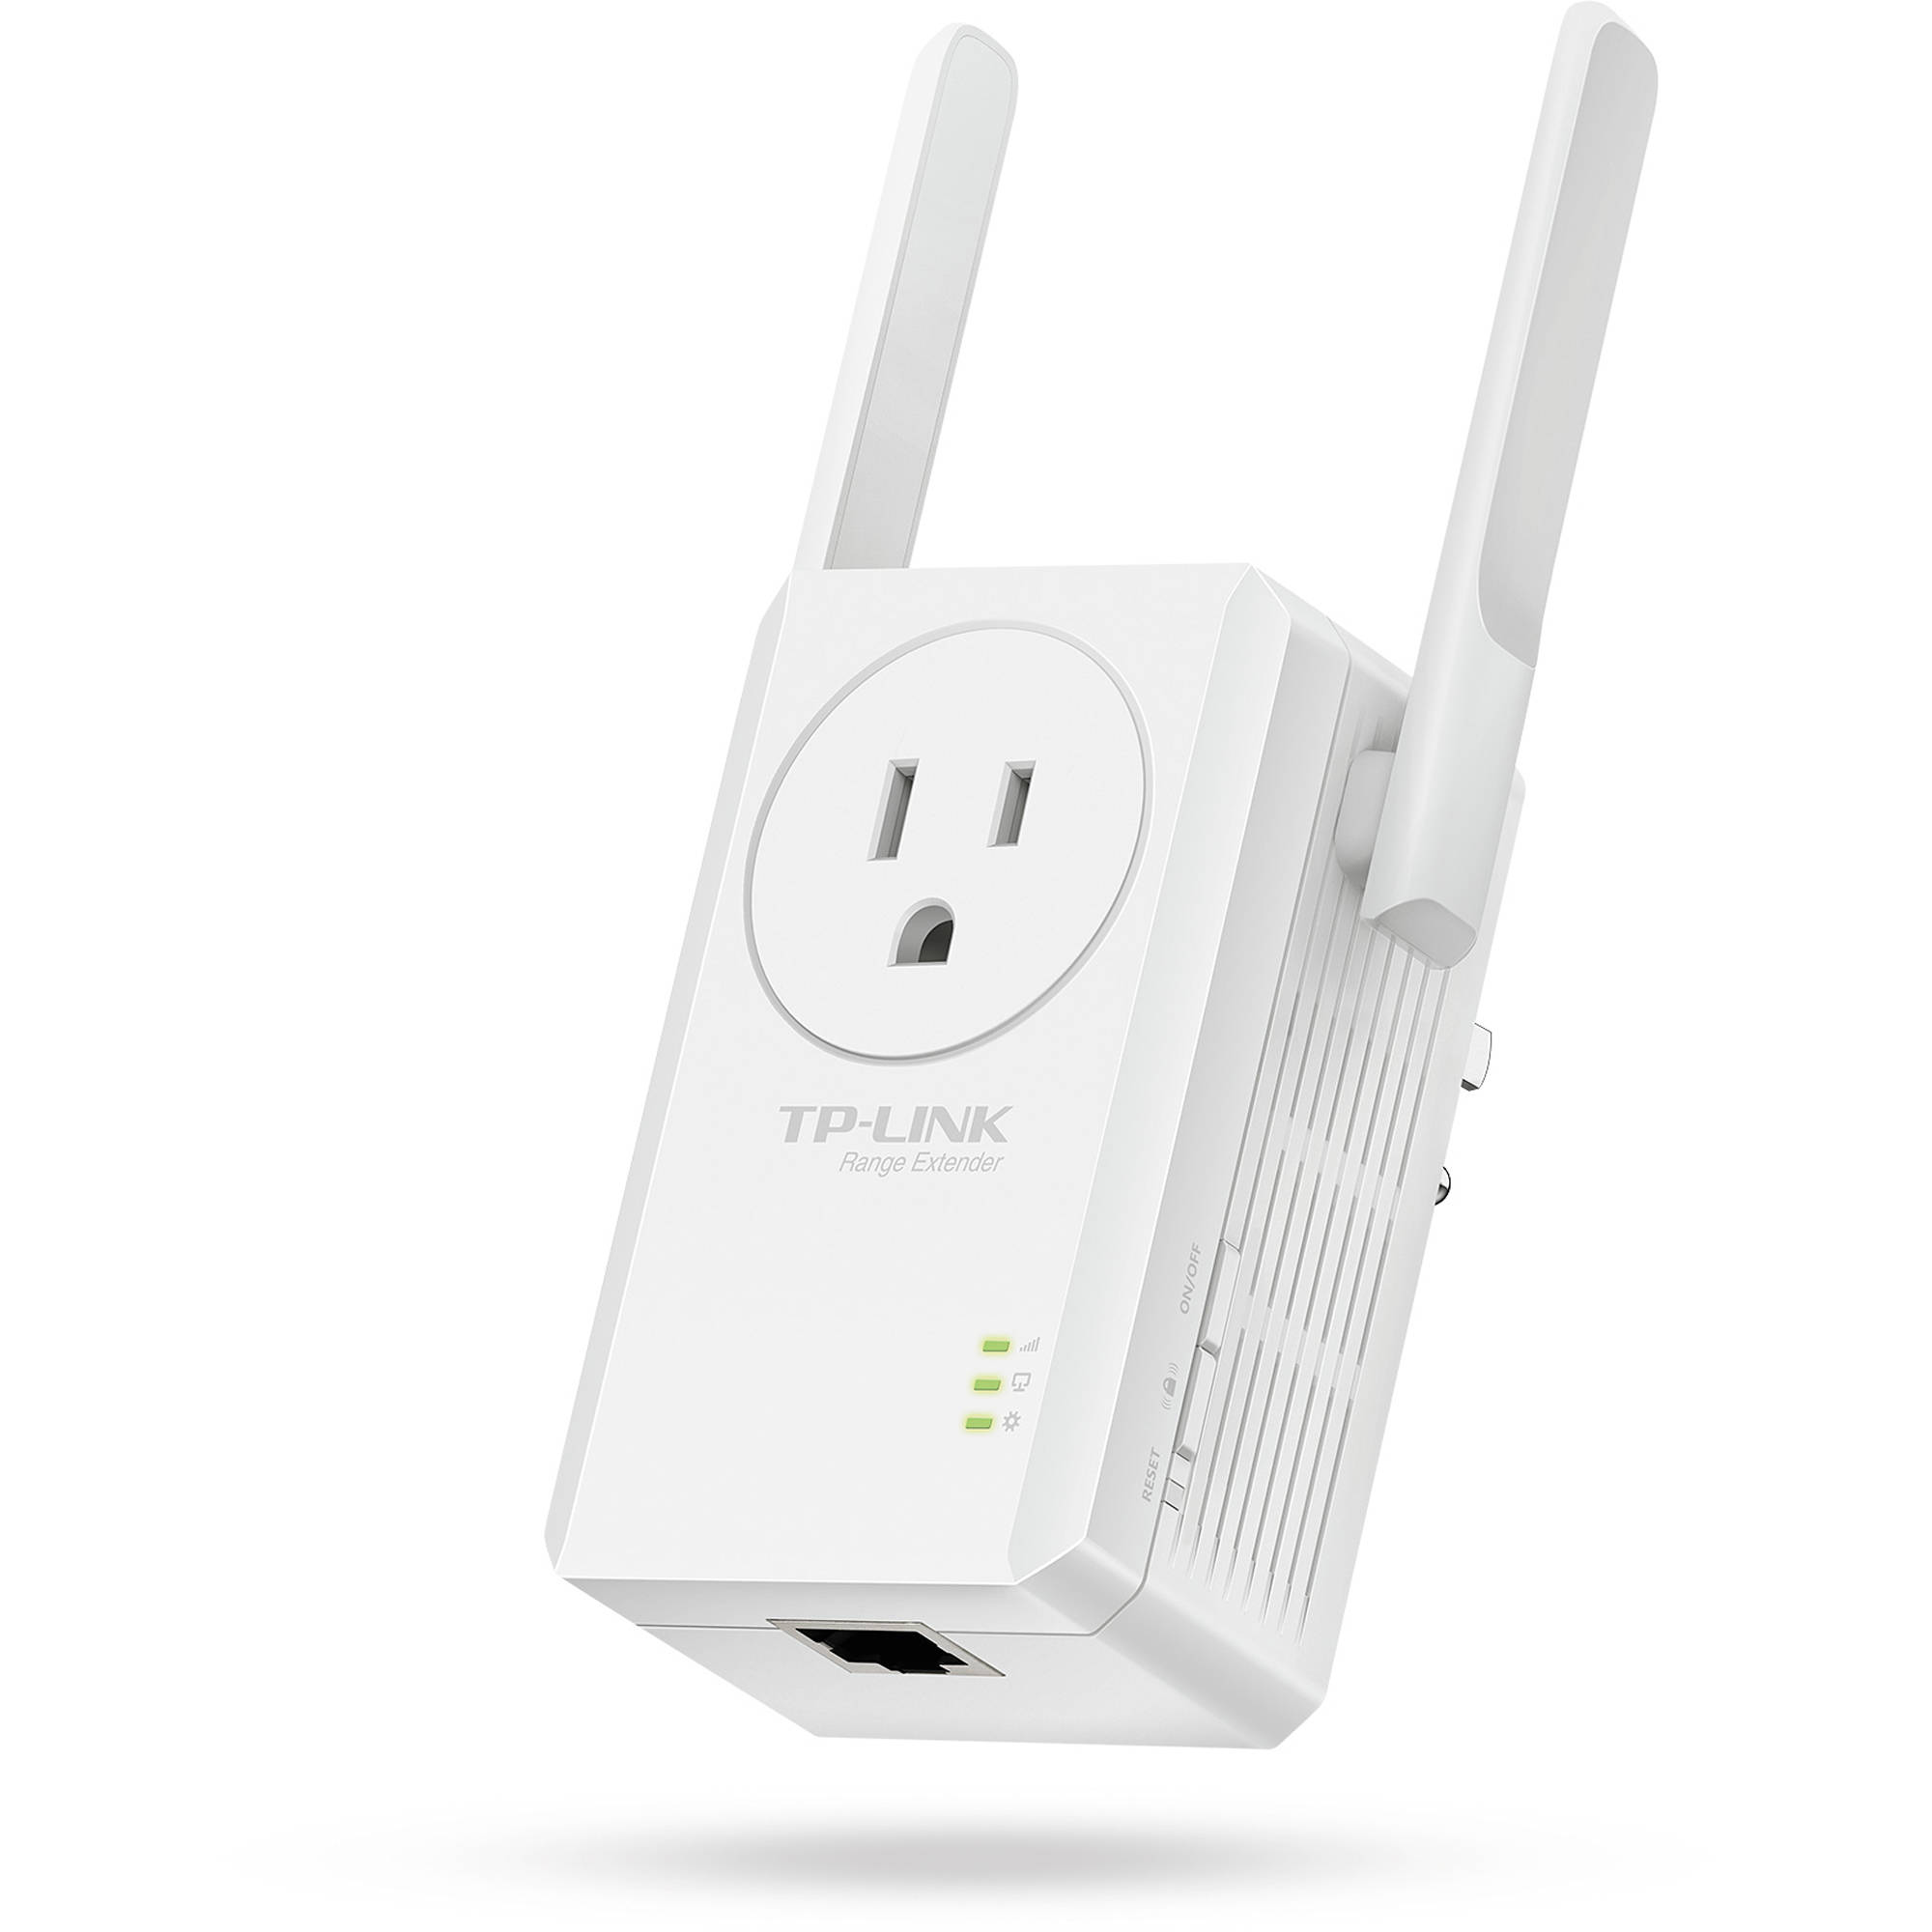 Download Driver: TP-Link TL-WA854RE Range Extender